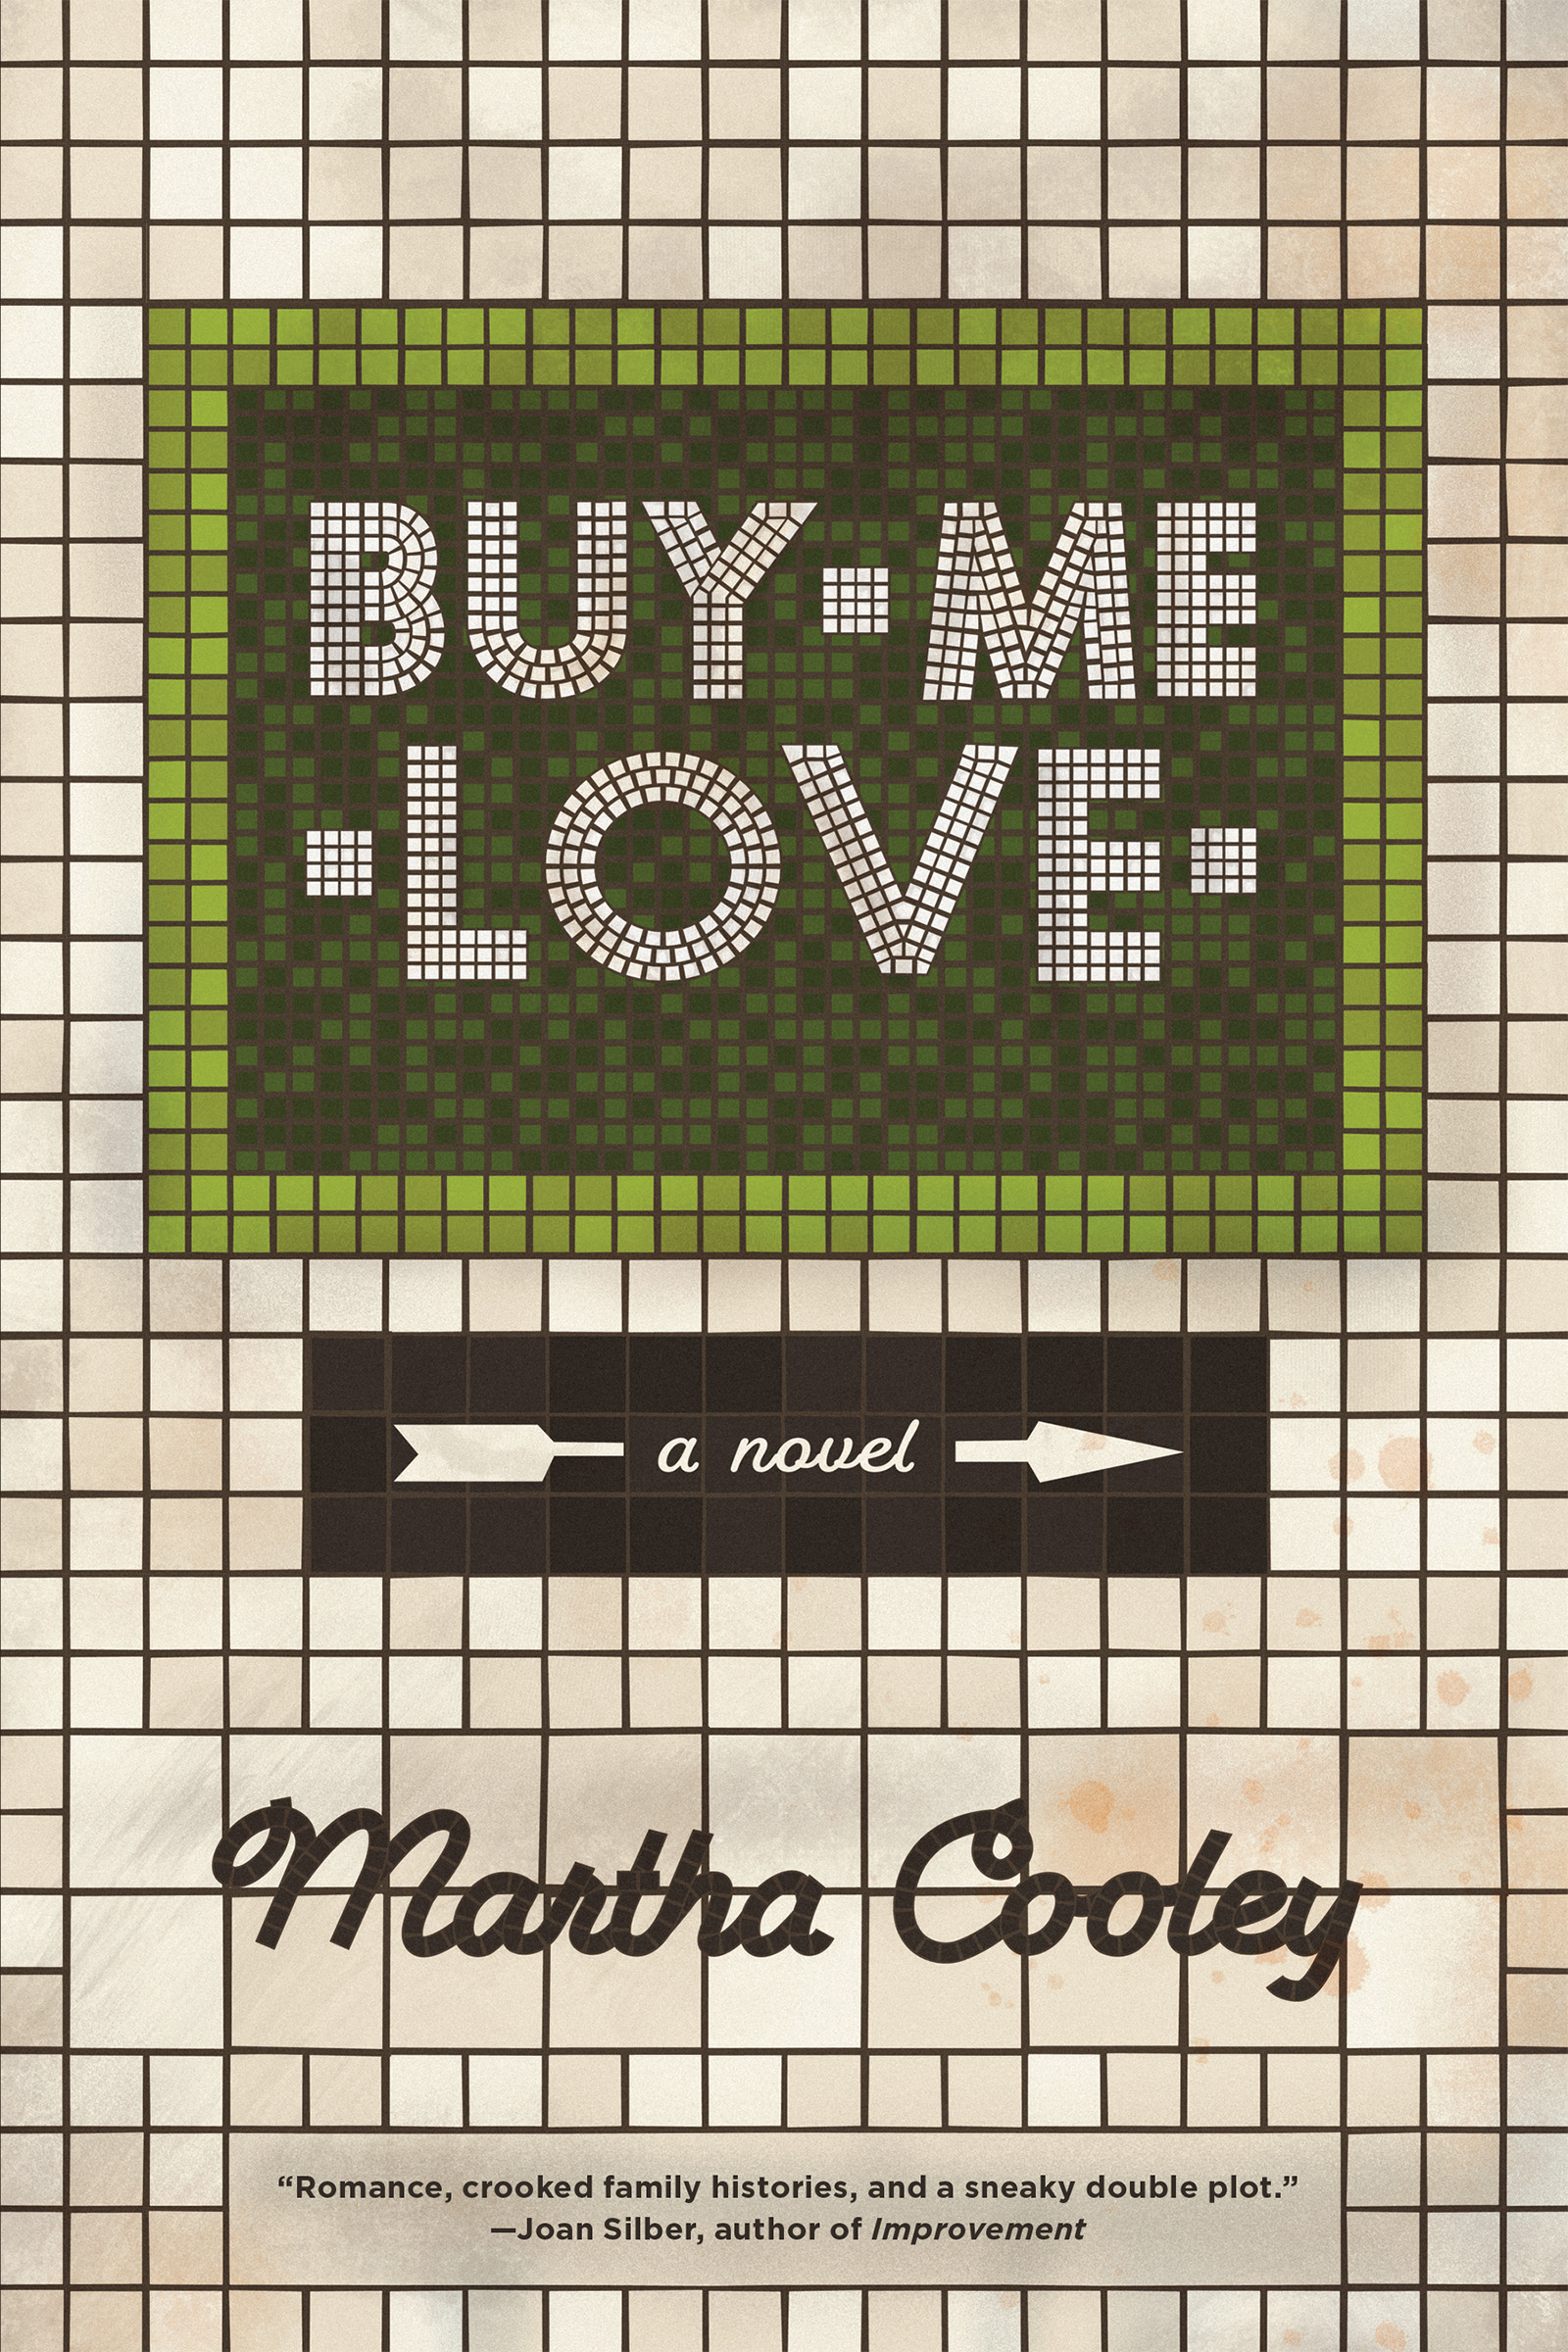 Cream tile with a smaller square of green tile towards the top with white text over it that reads Buy Me Love a novel by Martha Cooley.